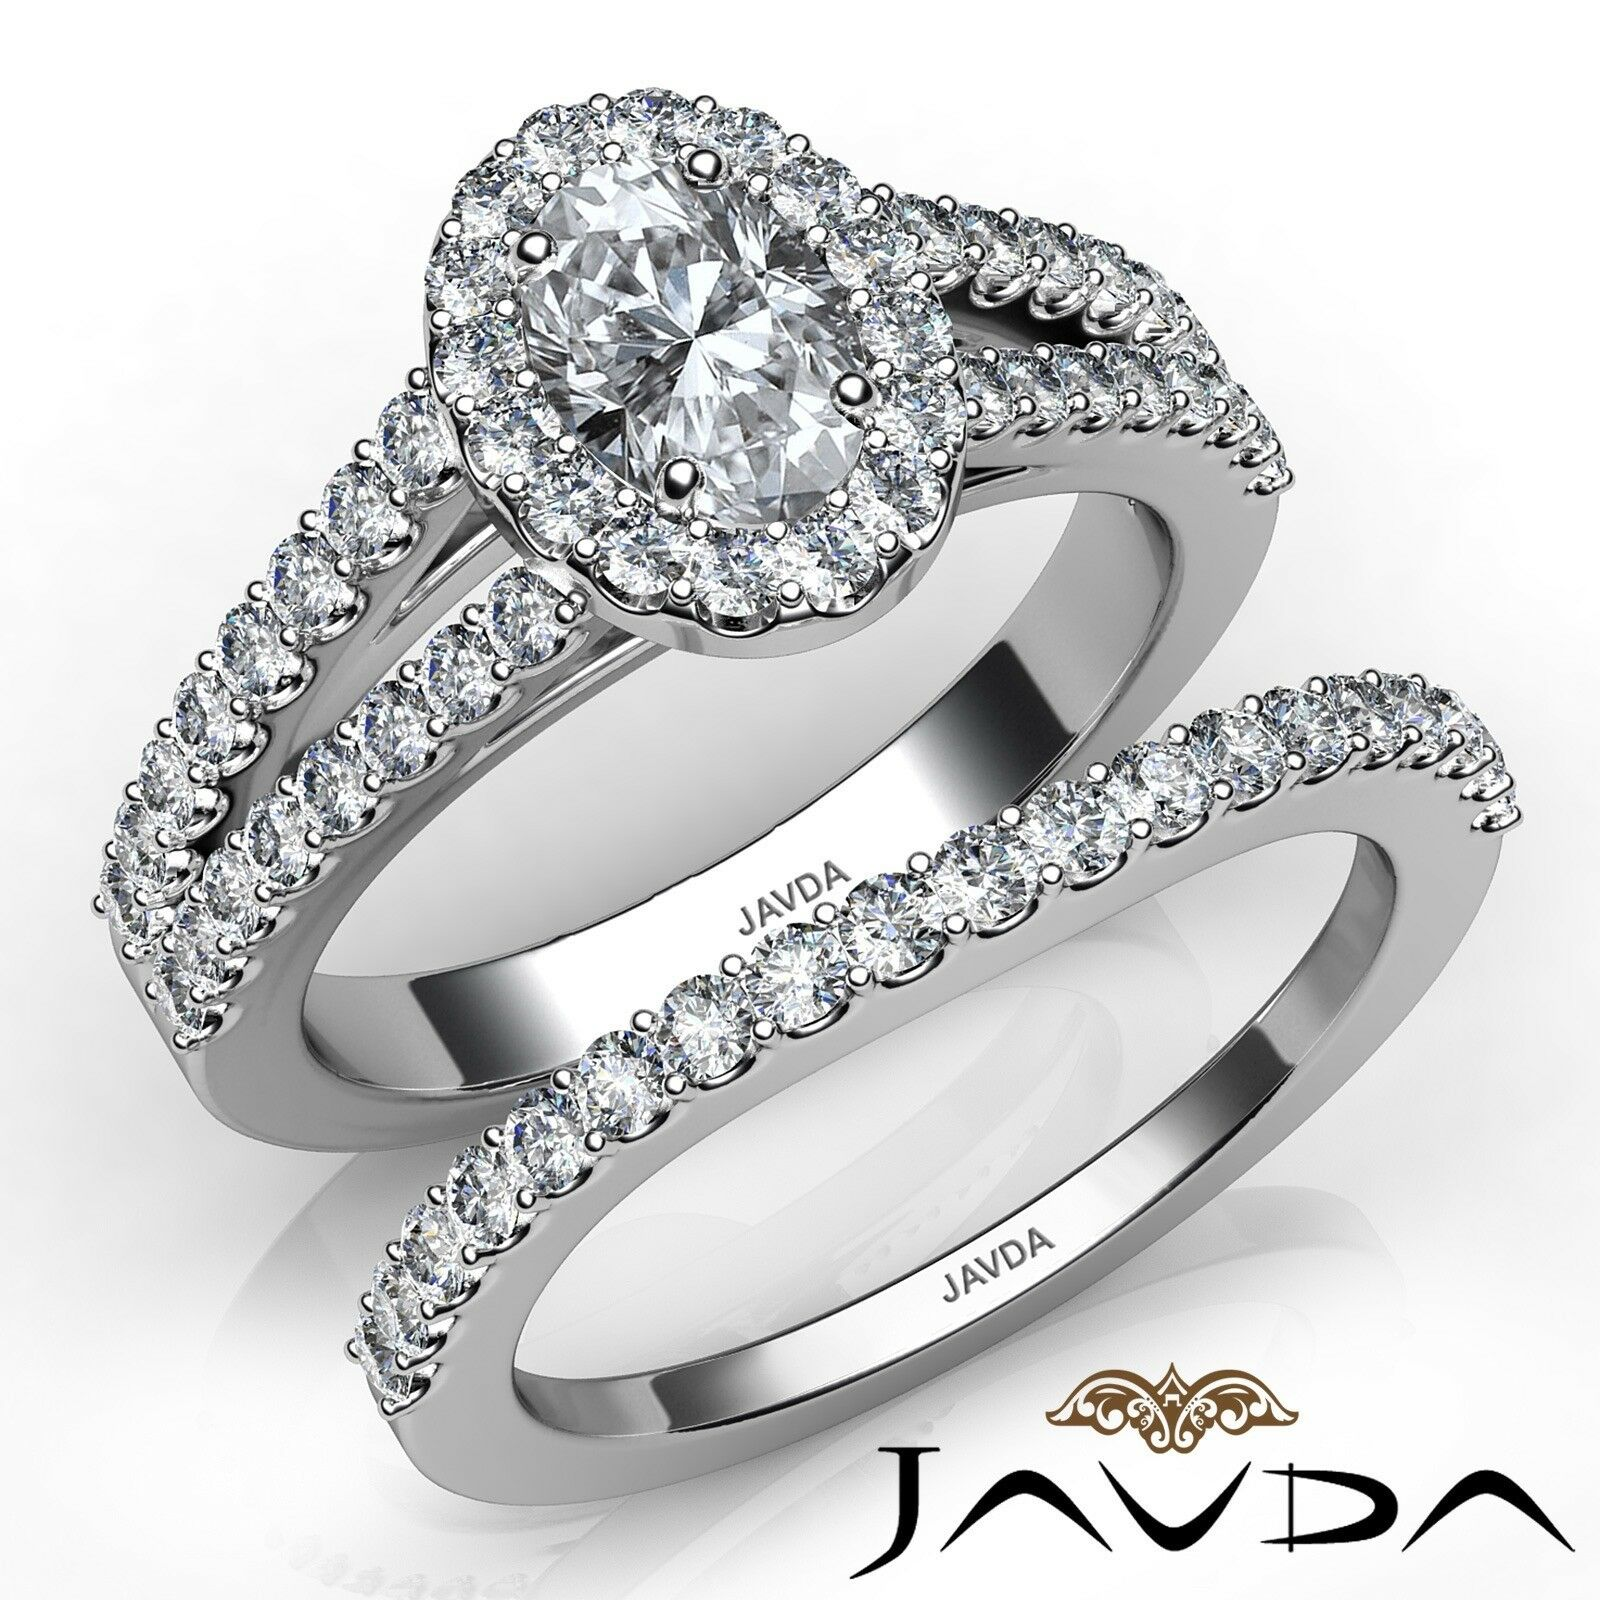 1.75ctw Hand Crafted Wedding Set Oval Diamond Engagement Ring GIA F-VVS2 W Gold